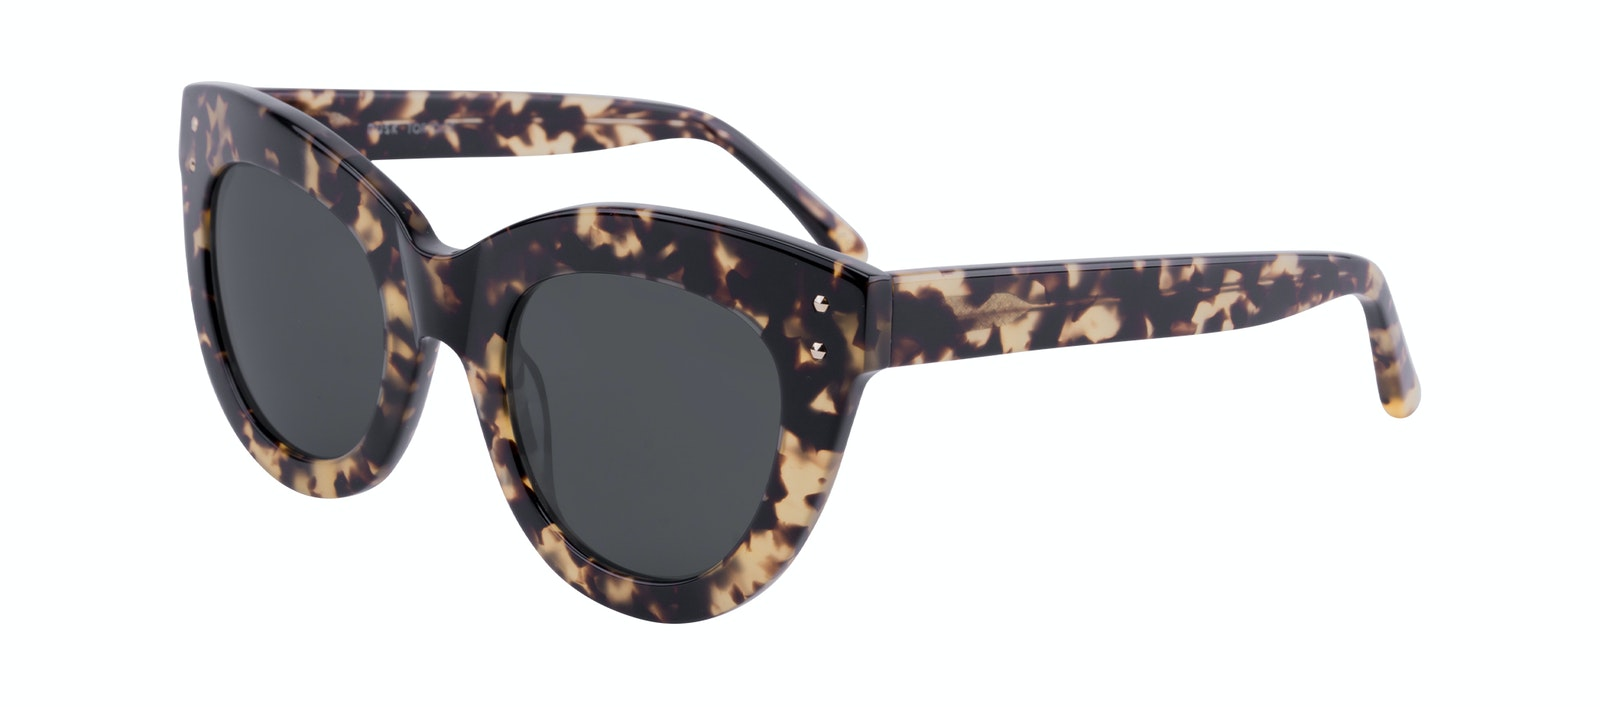 Affordable Fashion Glasses Sunglasses Women Dusk Tortoise Tilt